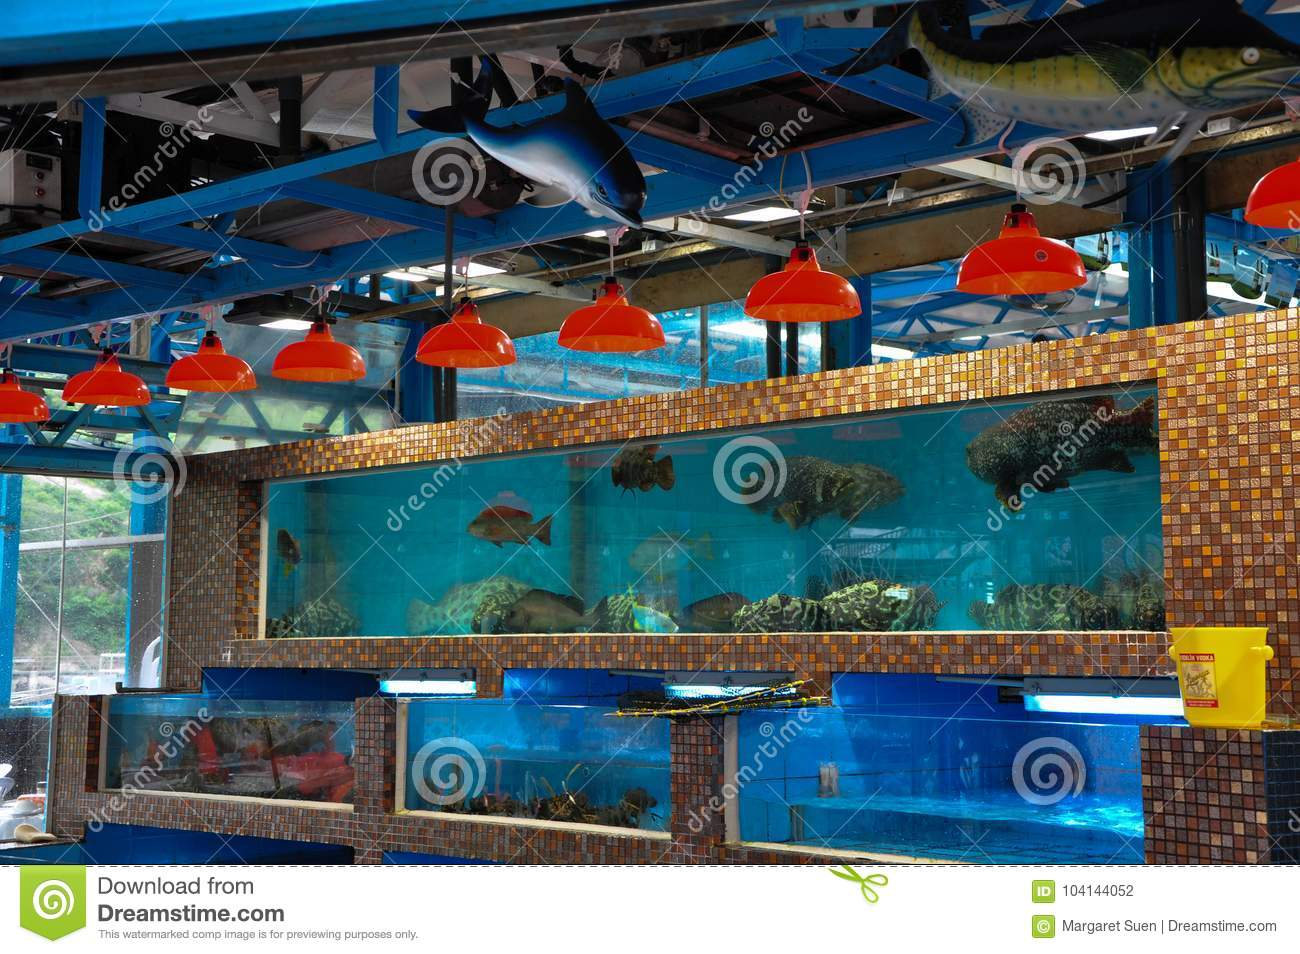 Chinese Seafood Restaurant Fish Tanks Stock Photo Image Of Seafood Shop 104144052